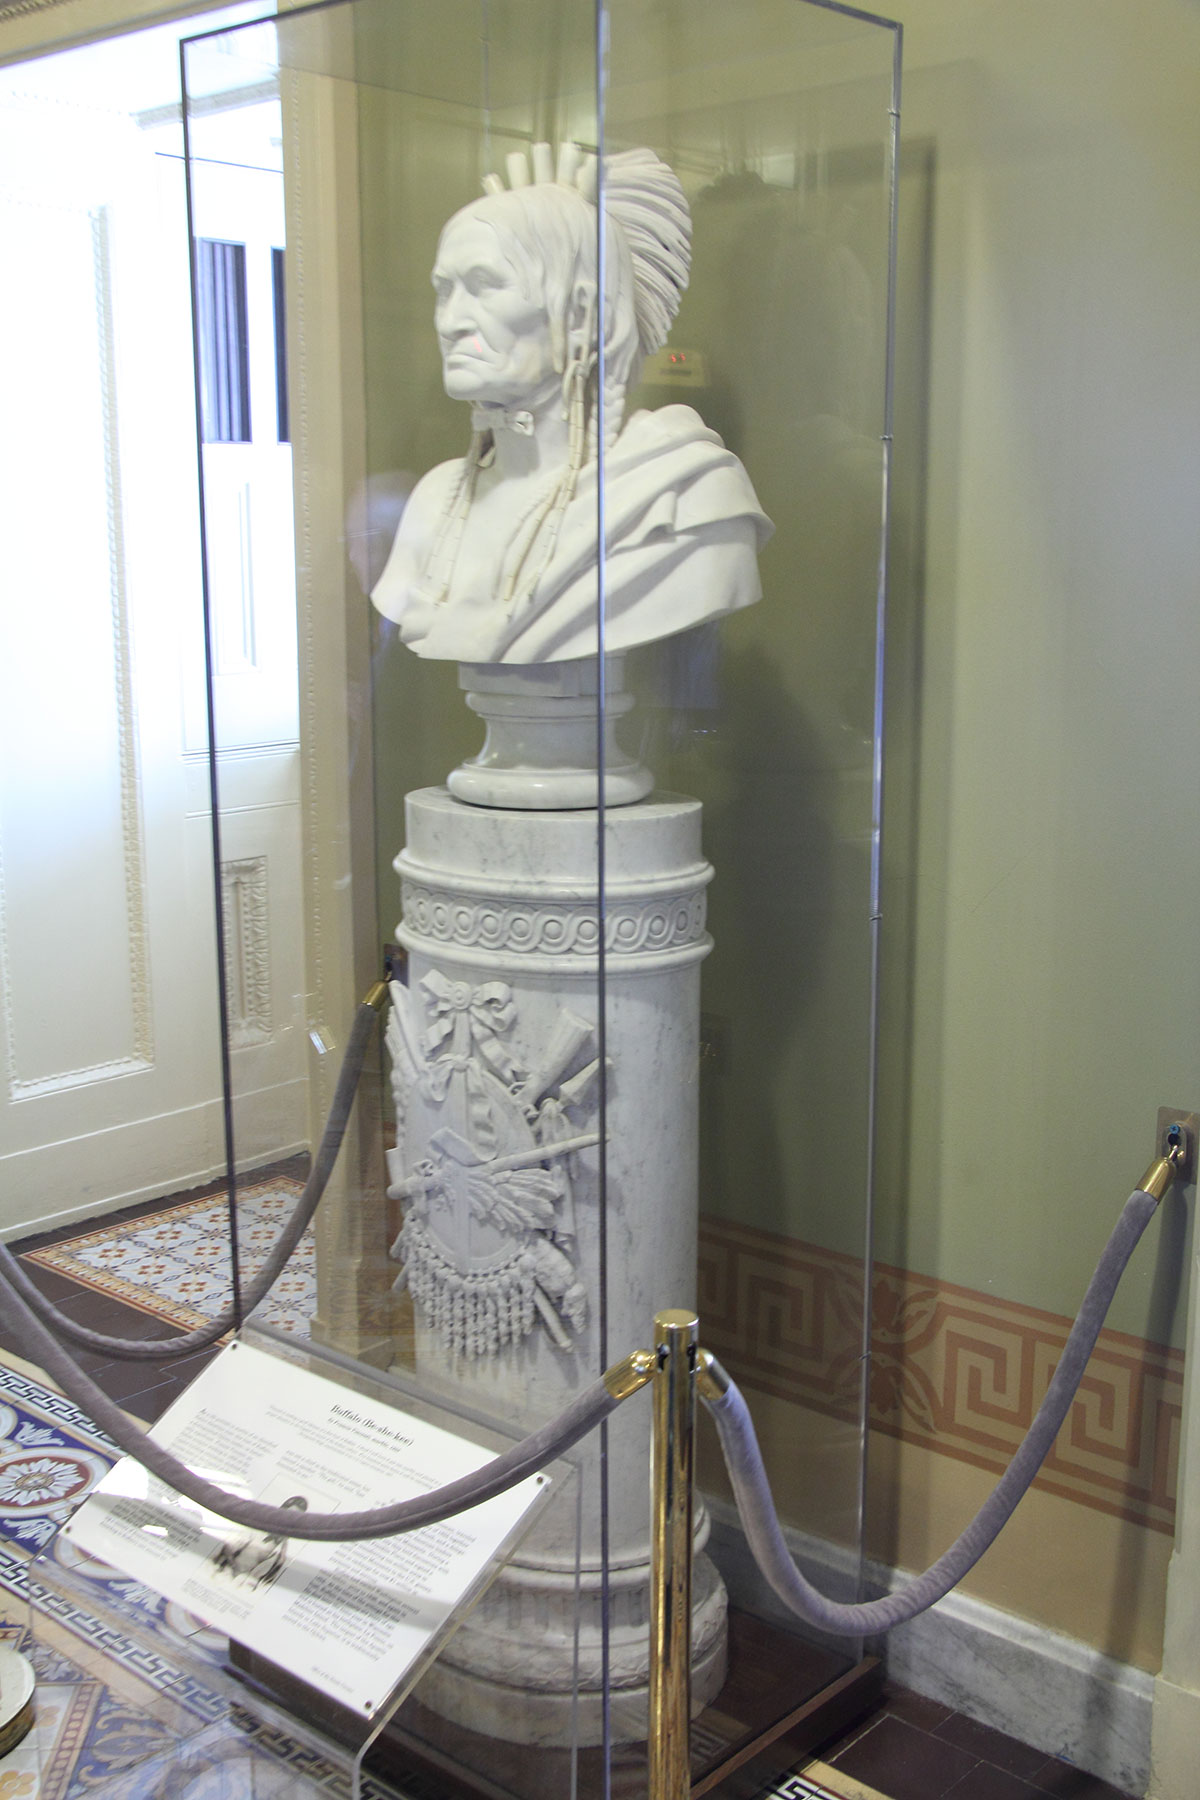 US-Senate-architectural-sculpture-conservation-2.jpg